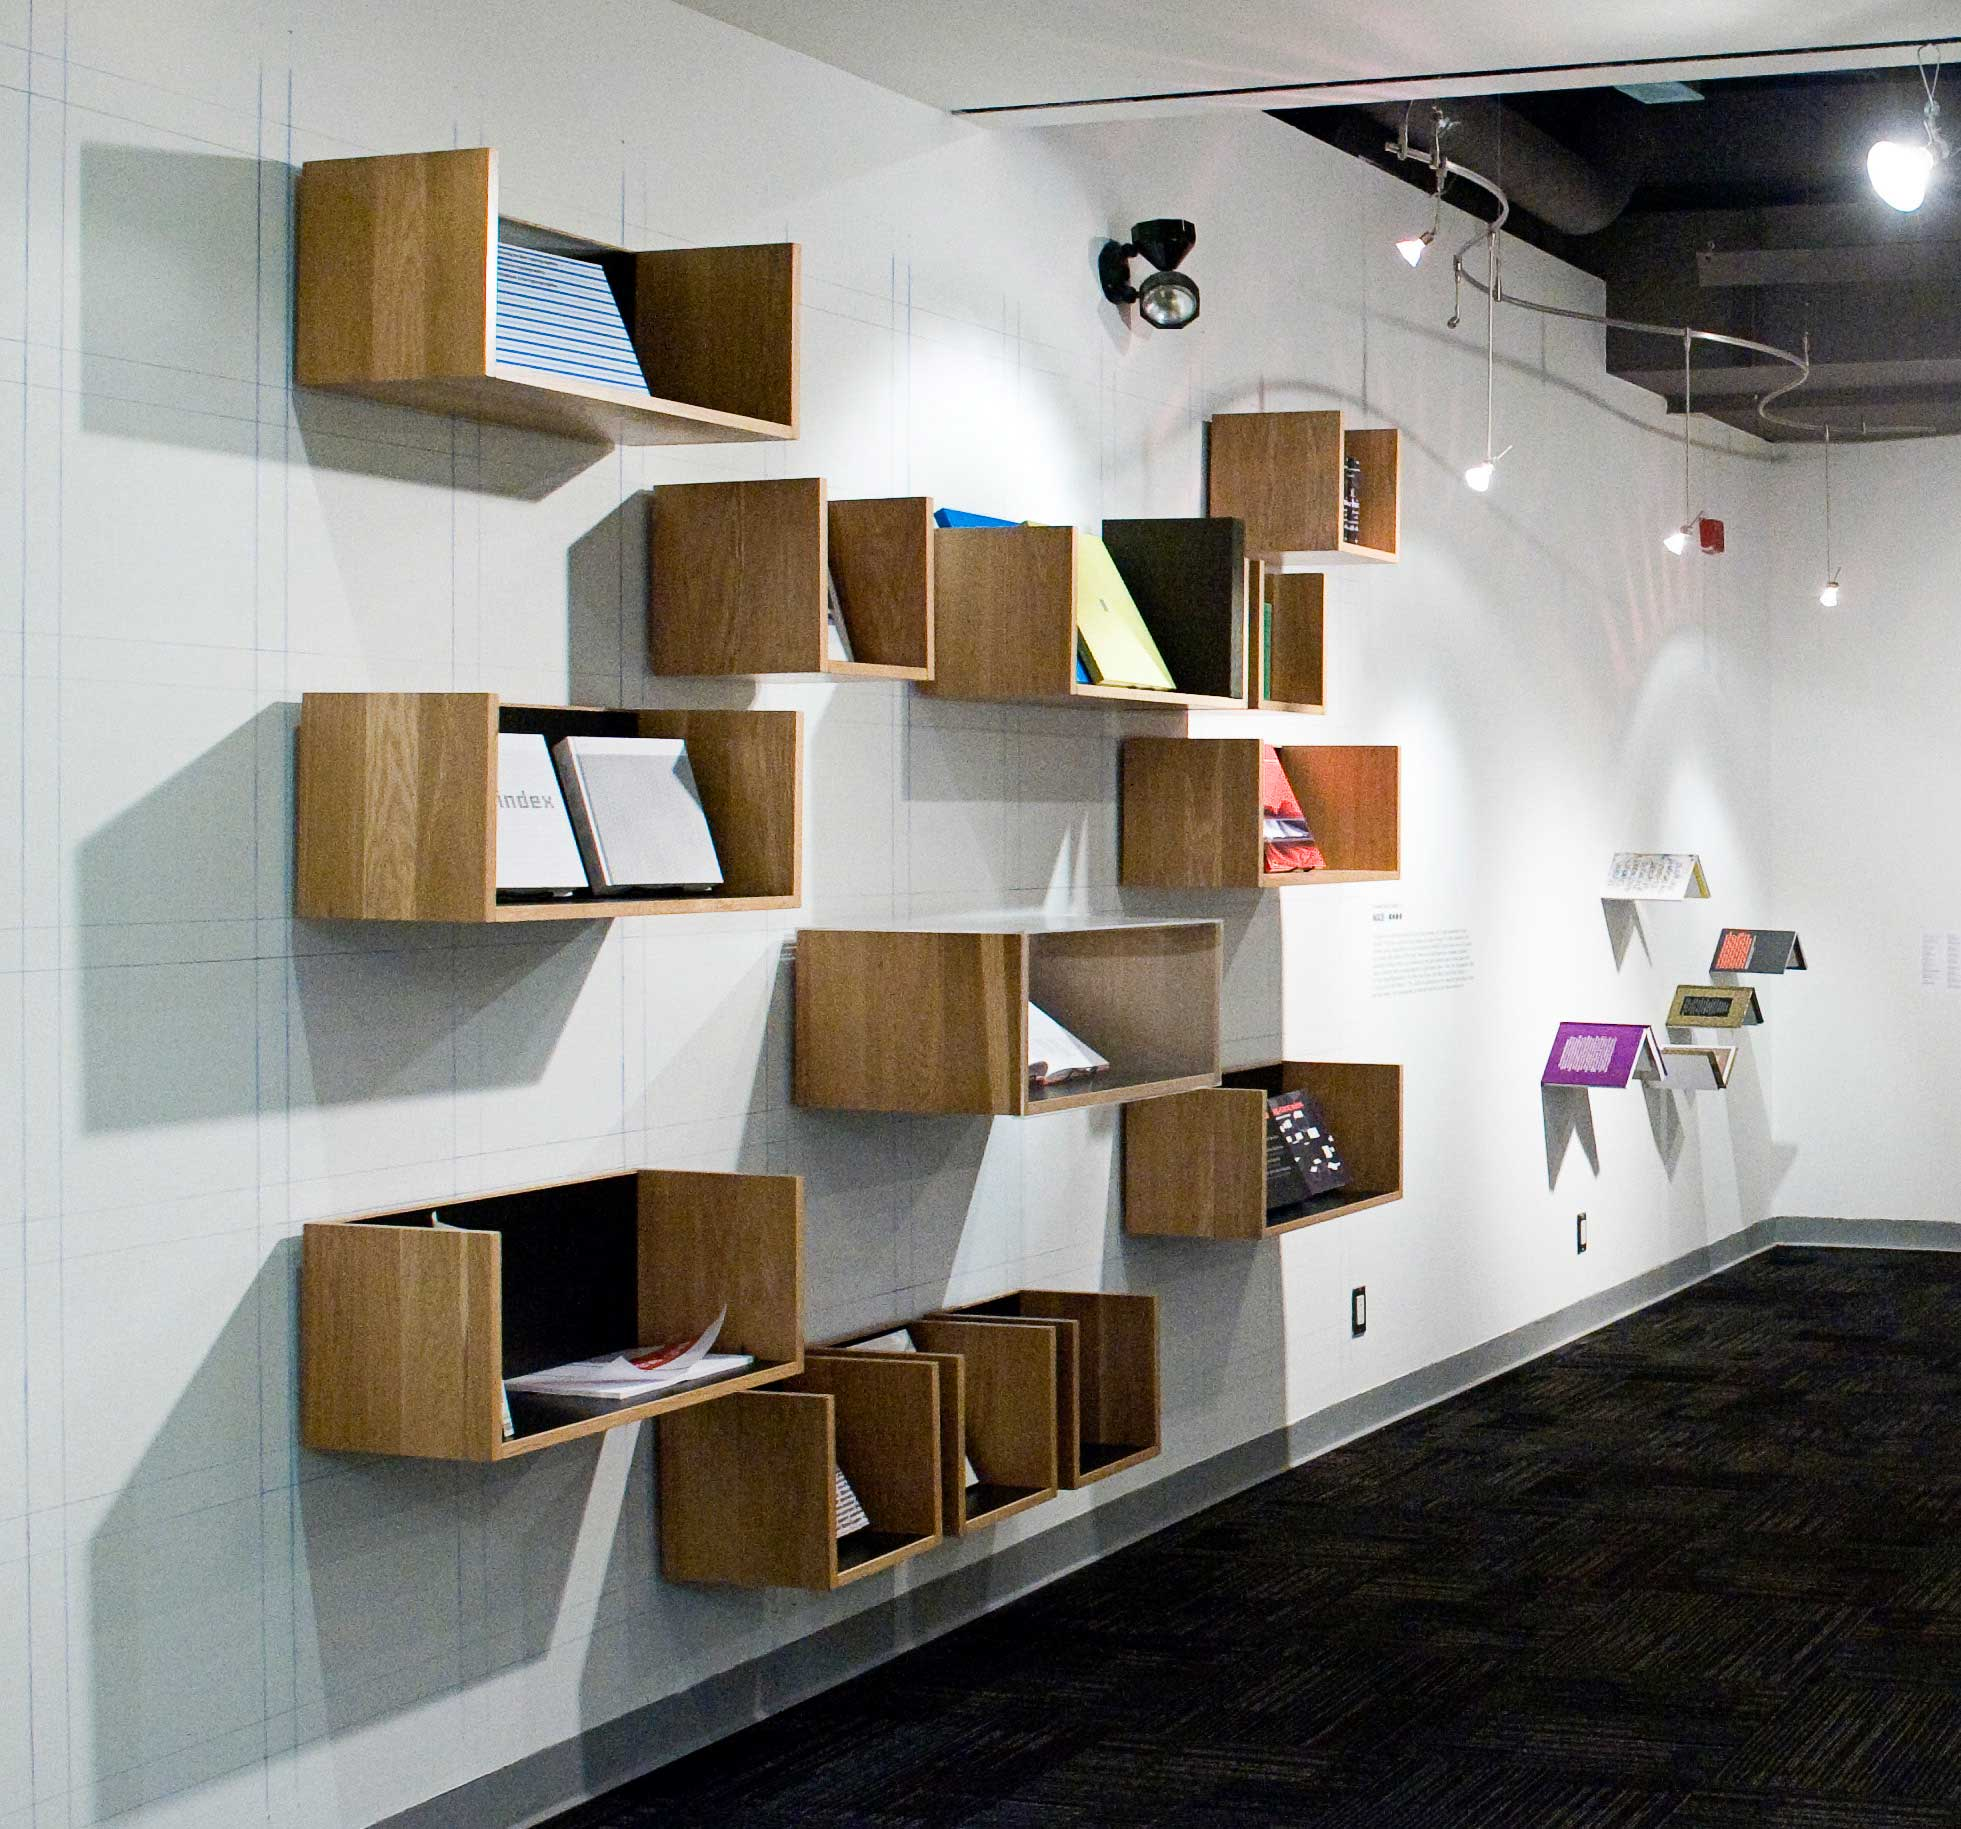 6_DX-Shelves-A.jpg